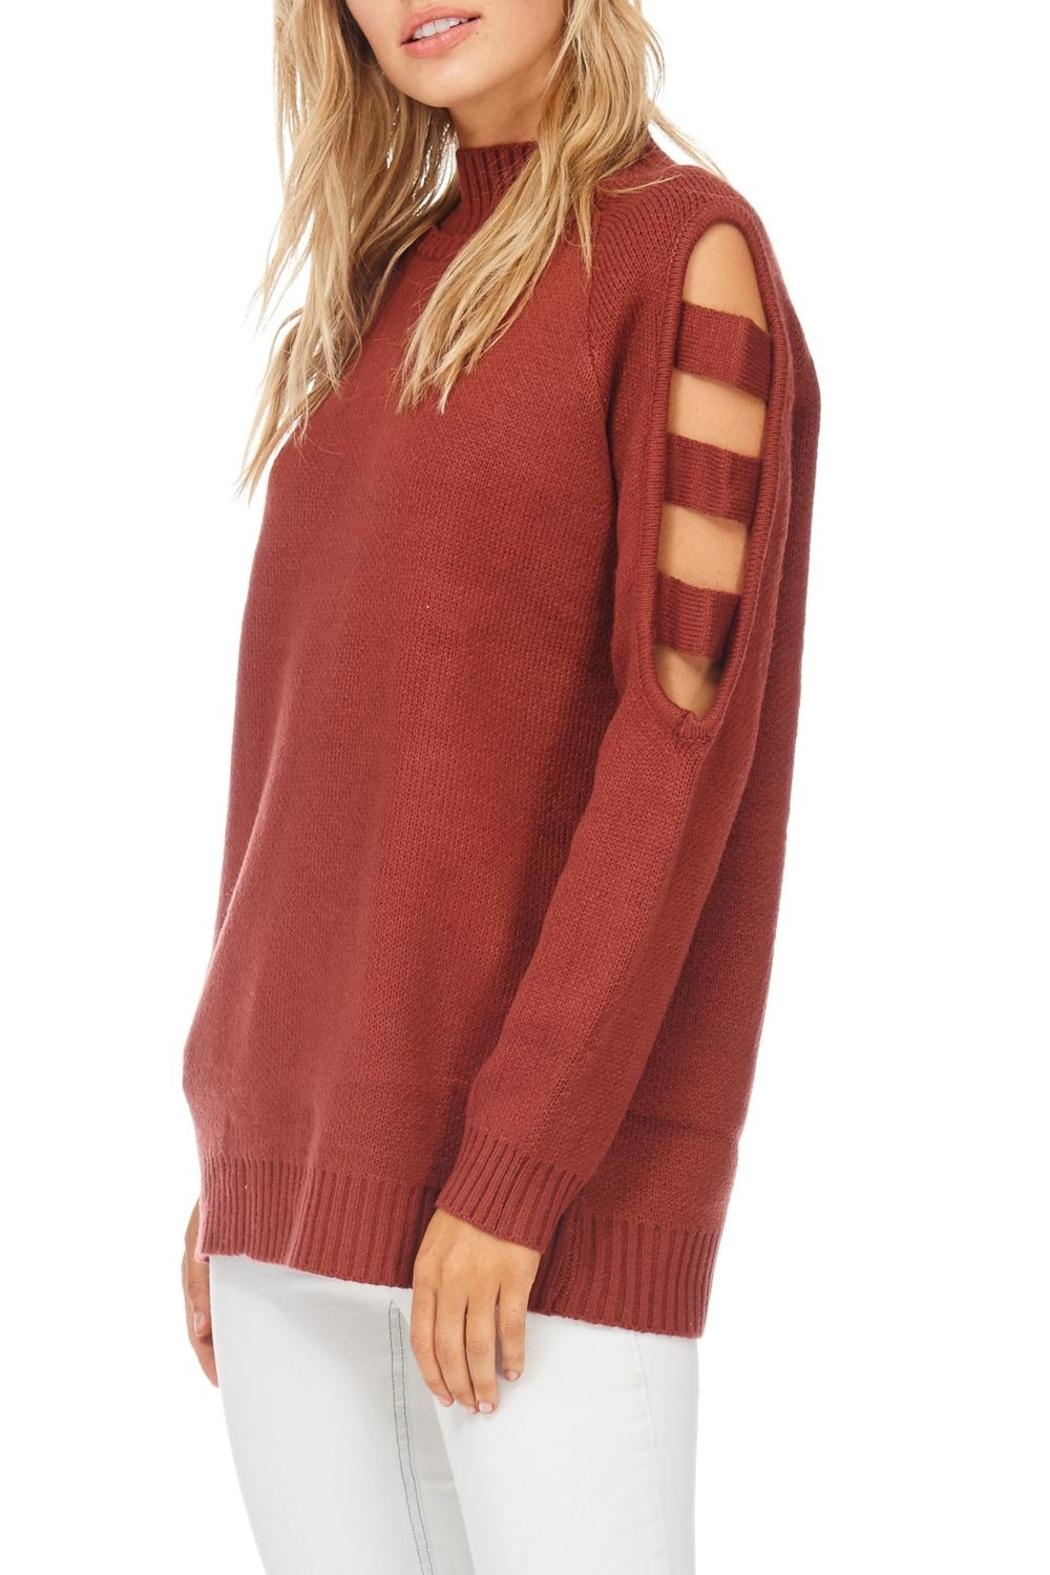 LoveRiche Brick Ladder Sleeve Sweater - Front Full Image